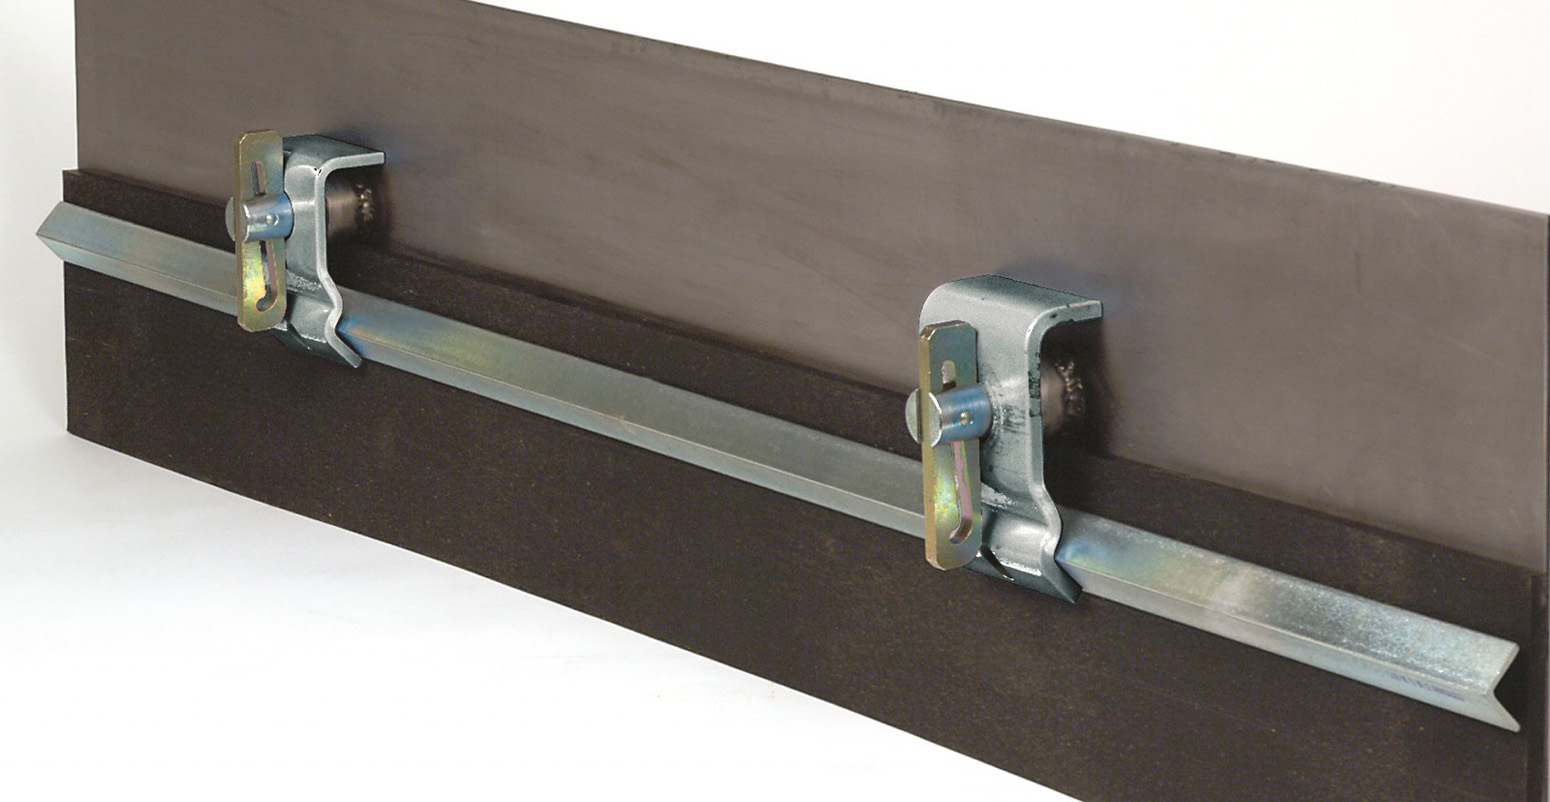 Flexco skirting systems effectively stop material spillage at the transfer point